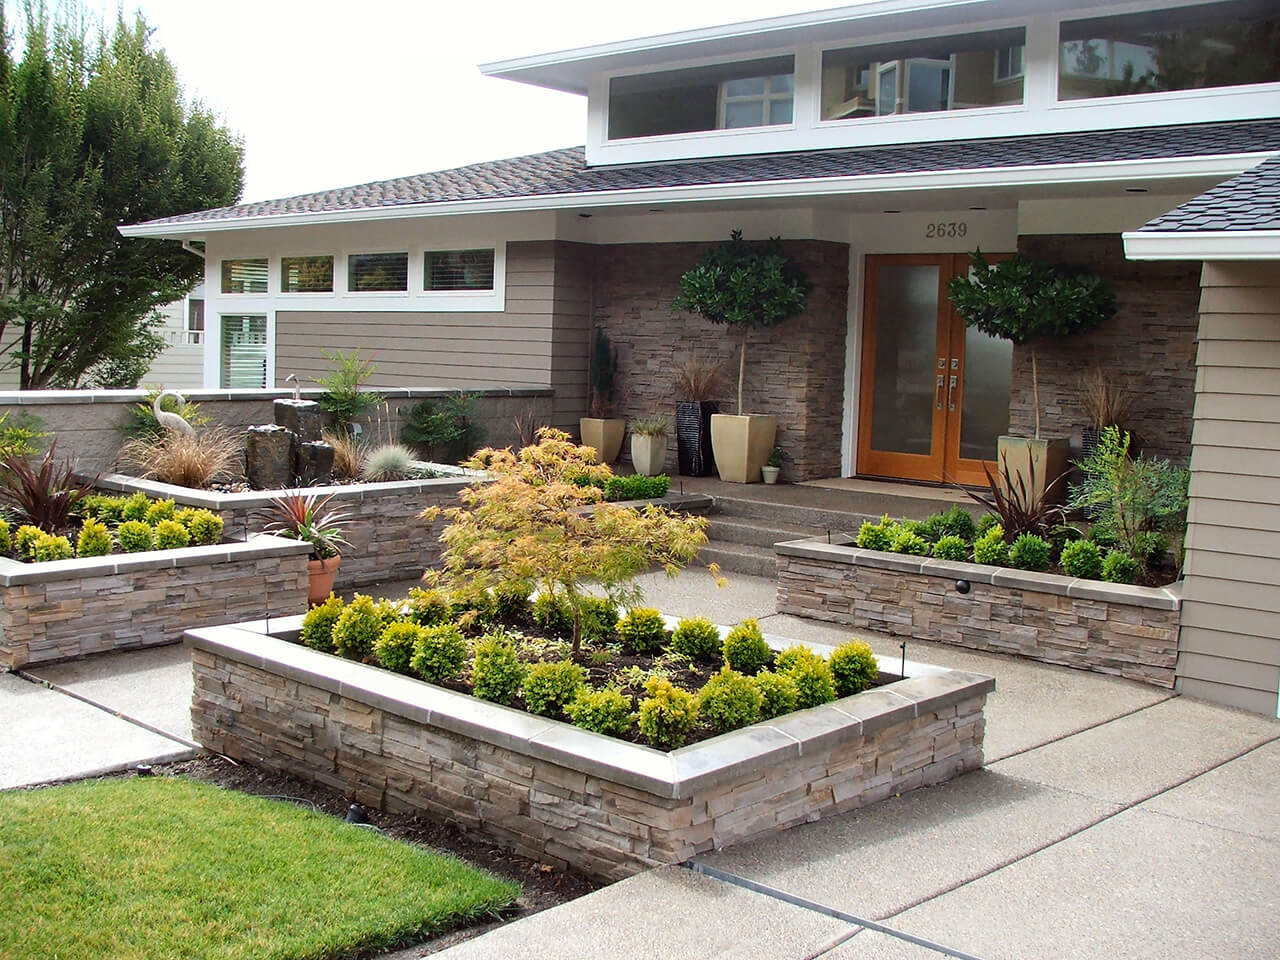 50 best front yard landscaping ideas and garden designs for Front yard landscape design